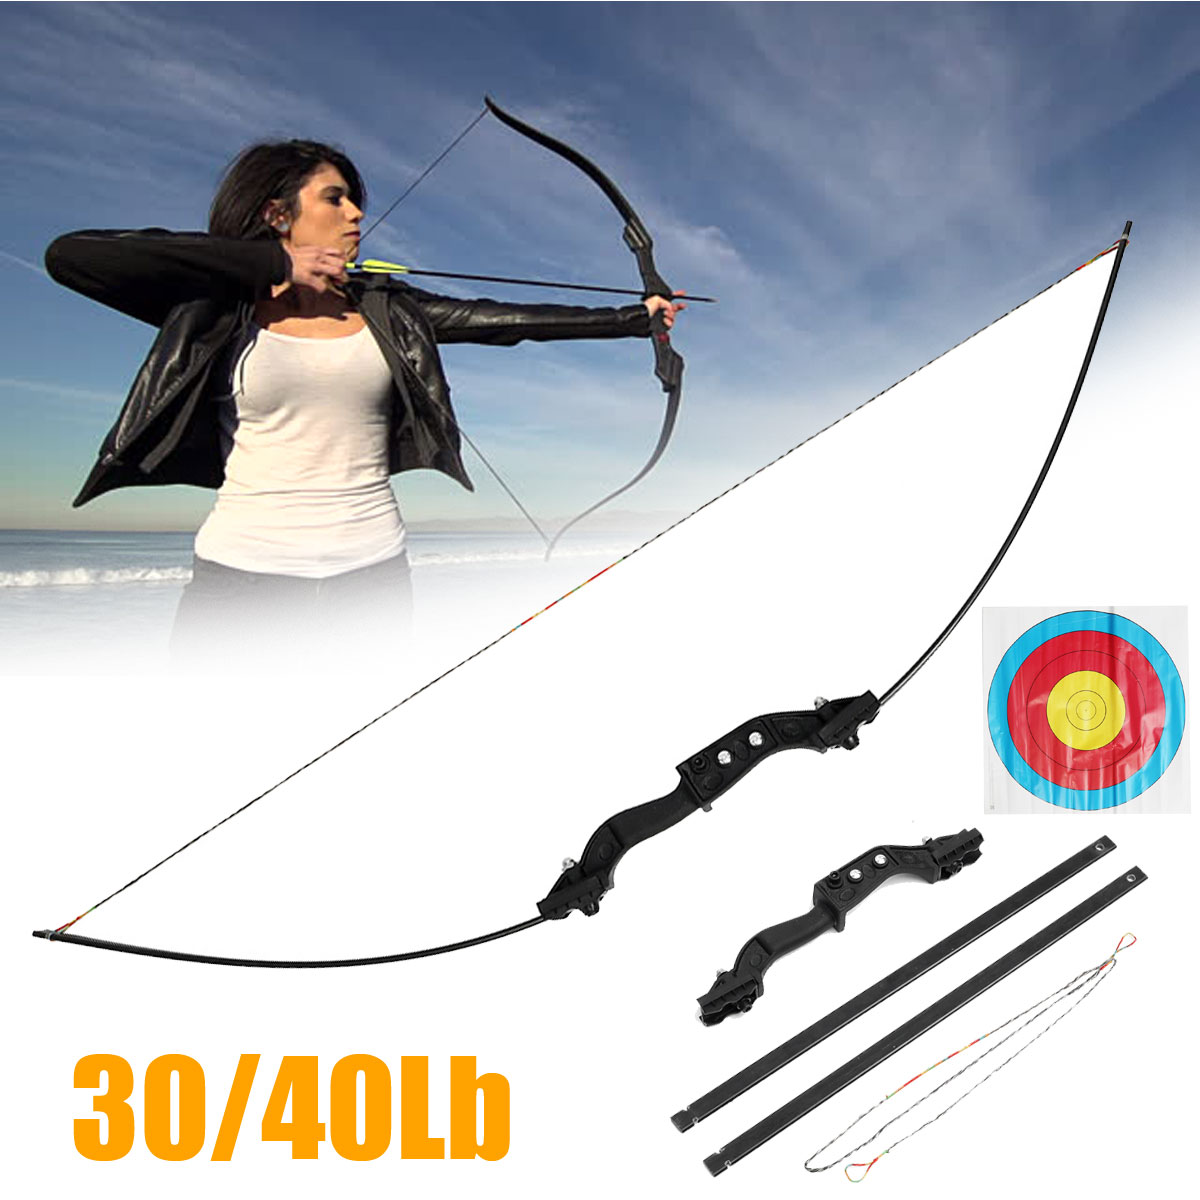 30/40lbs Archery Hunting Metal Bow Right Handed Shooting Takedown Adult Sport With Archery Target